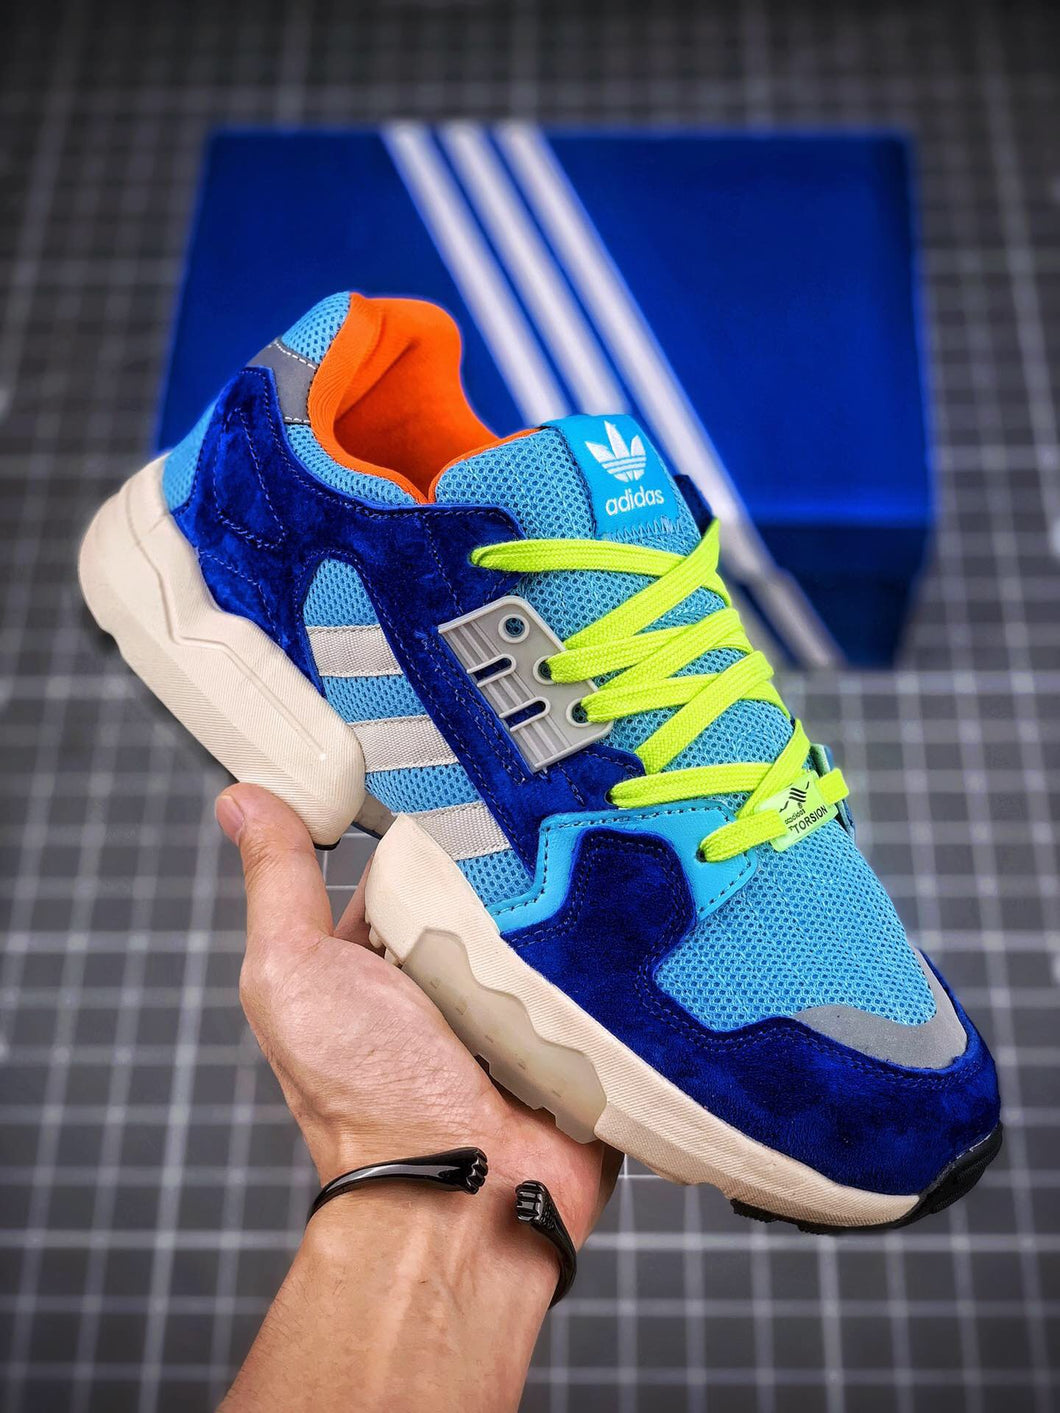 Adidas ZX Torsion - Just_4Kicks